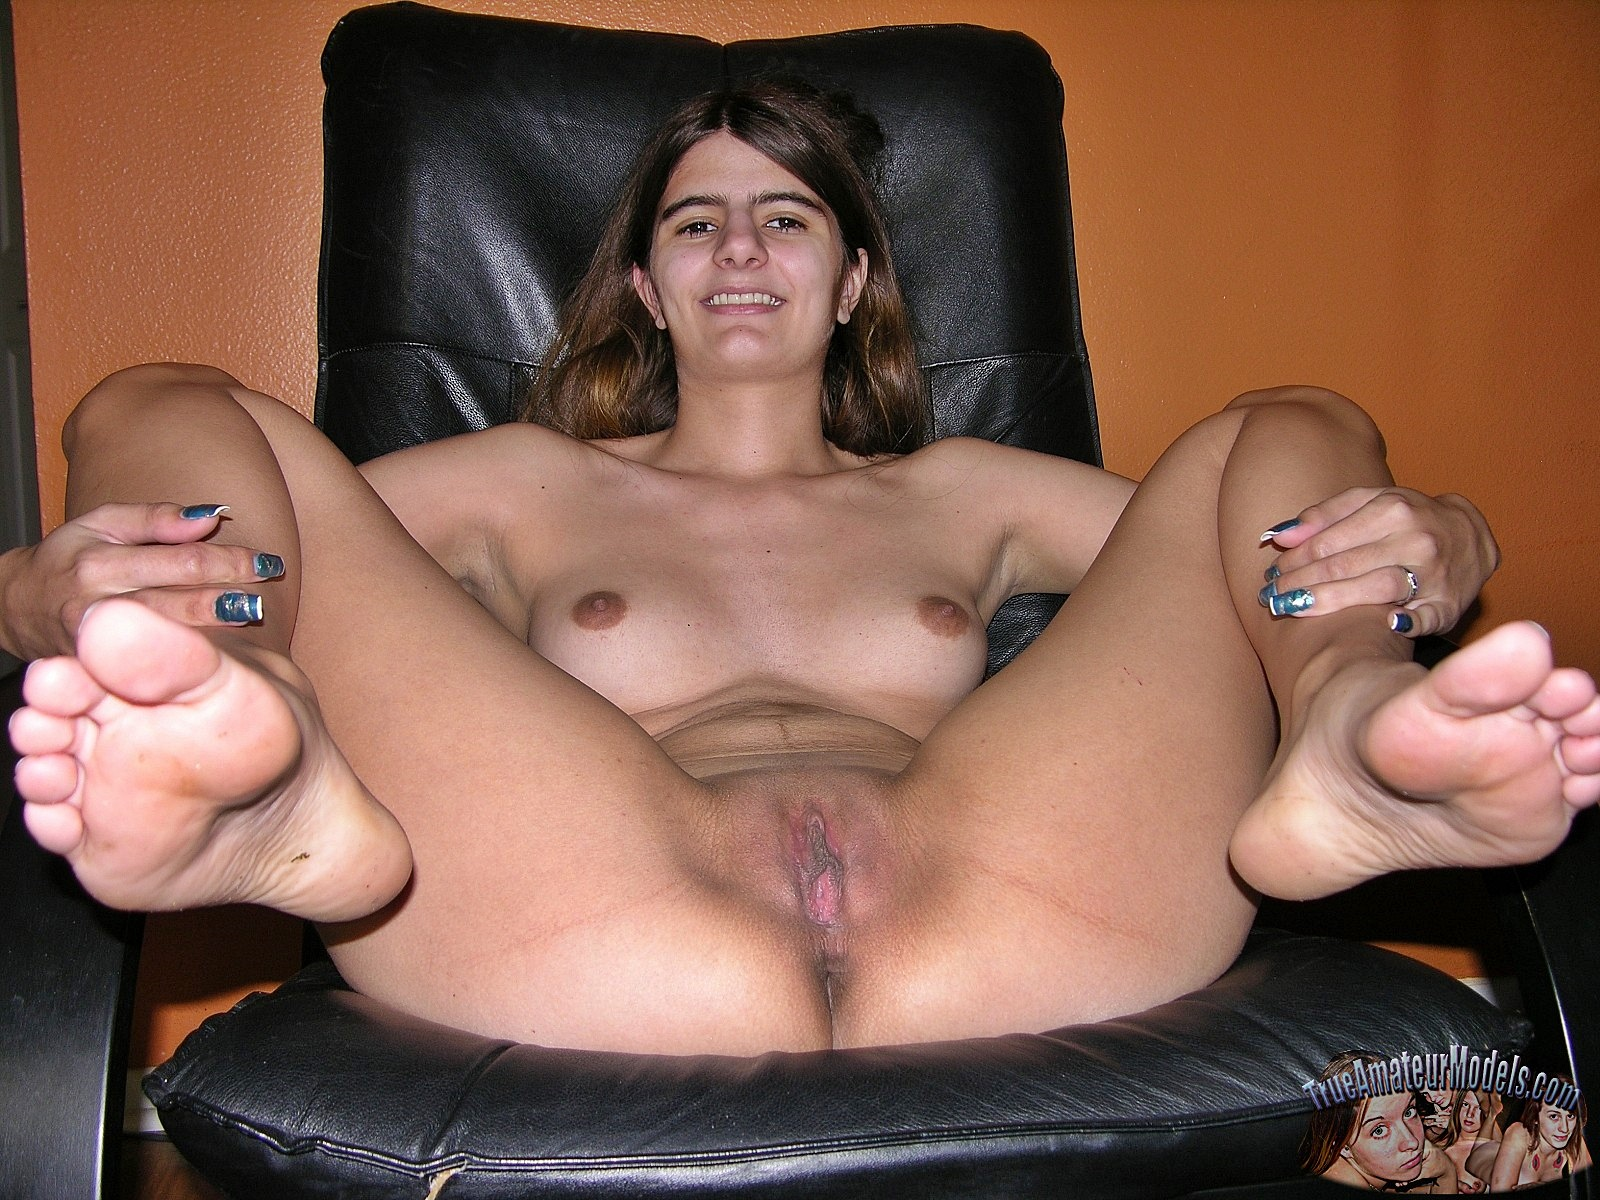 Hairy Native American Pussy Best brunette spreads her cunt > amateurporn.photos